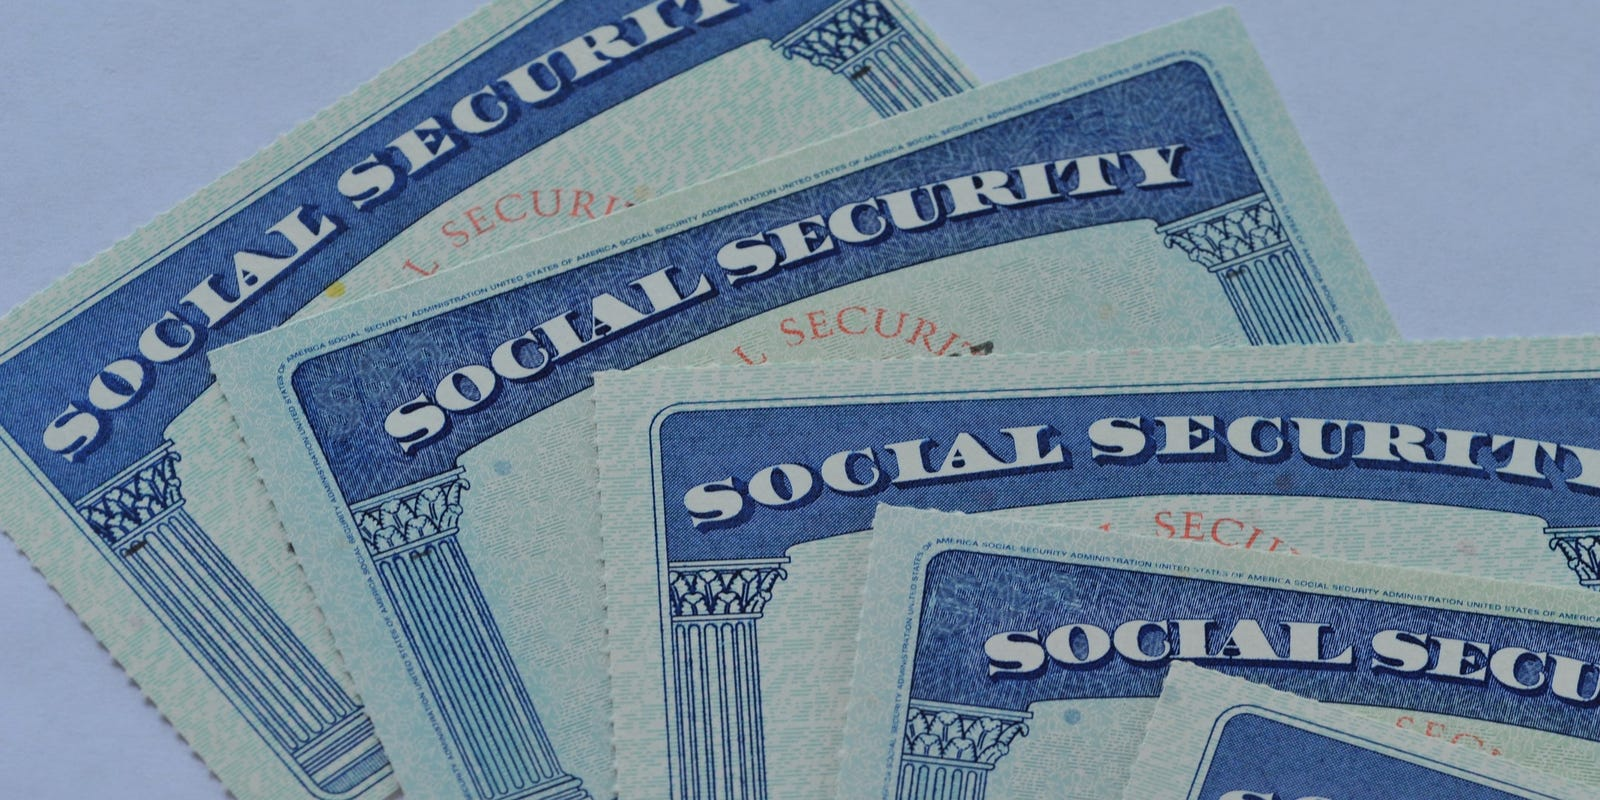 Don't rely on Social Security alone for your retirement. Here are 3 reasons why.